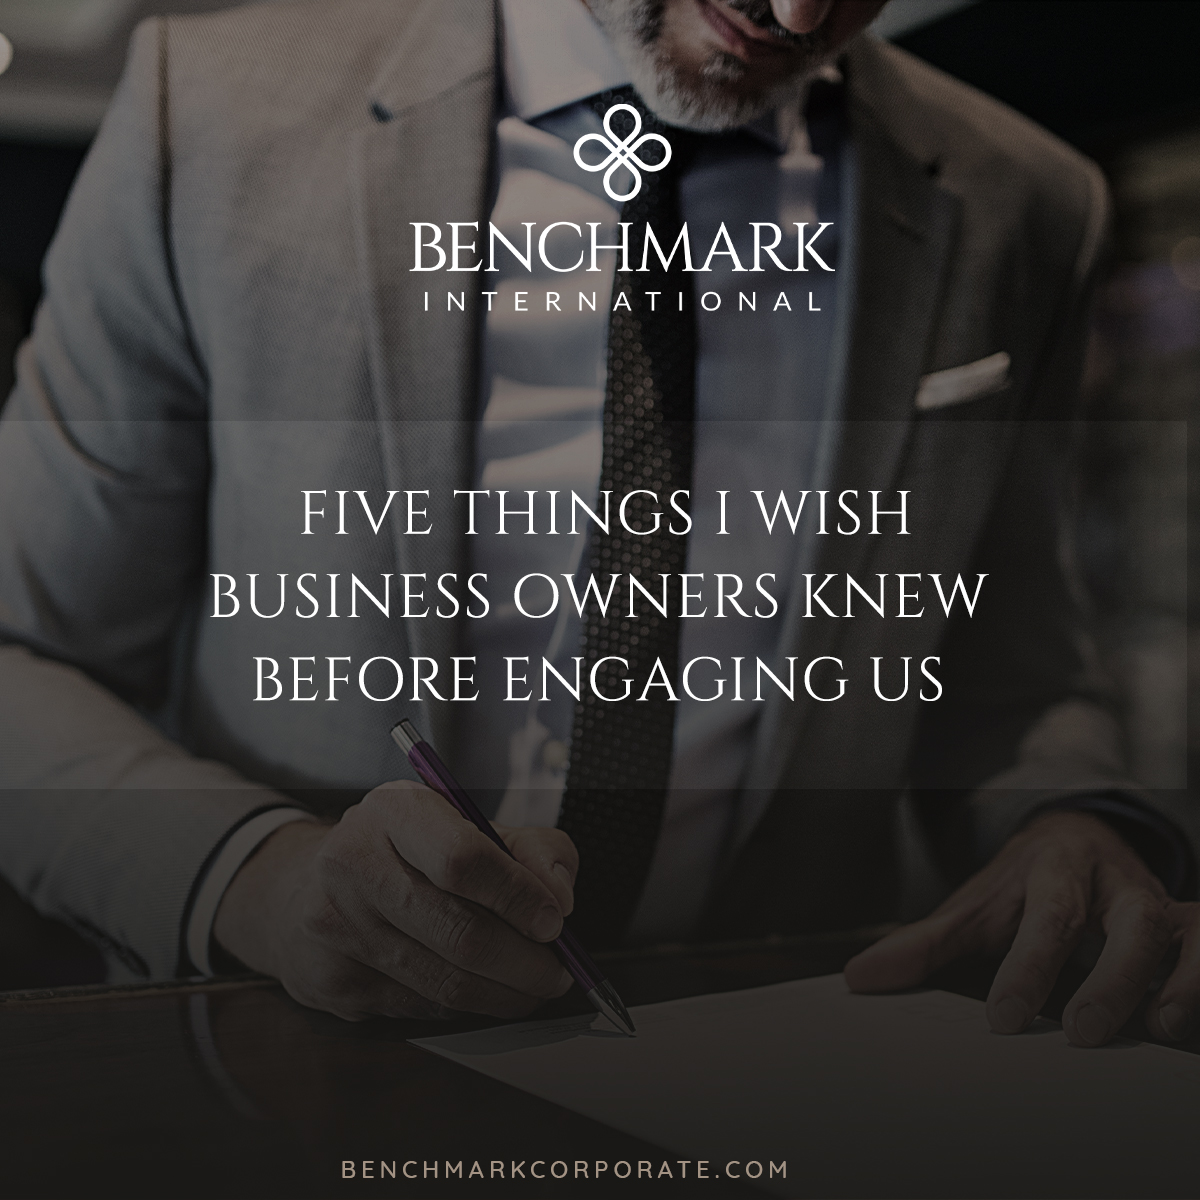 Five-Things-i-Wish_Business_Owners_knew-Social